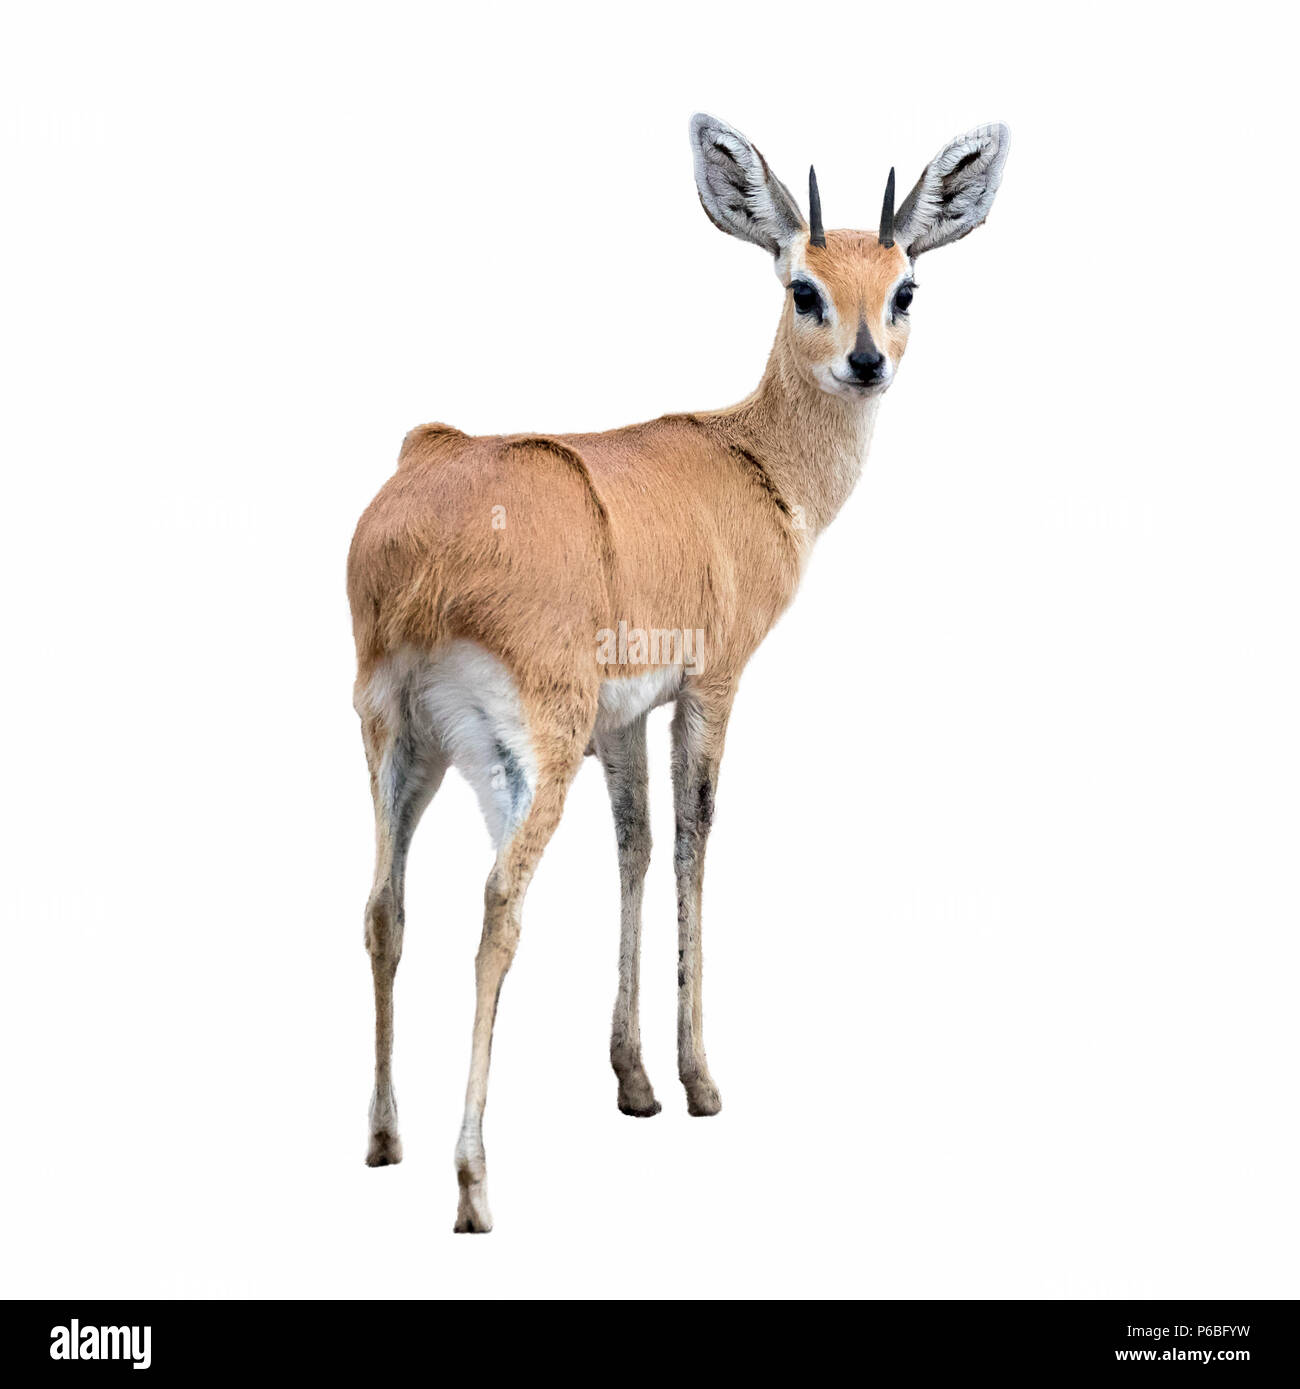 An adult steenbok isolated on white background. The steenbok is the smallest antelope in Southern and Eastern Africa. - Stock Image